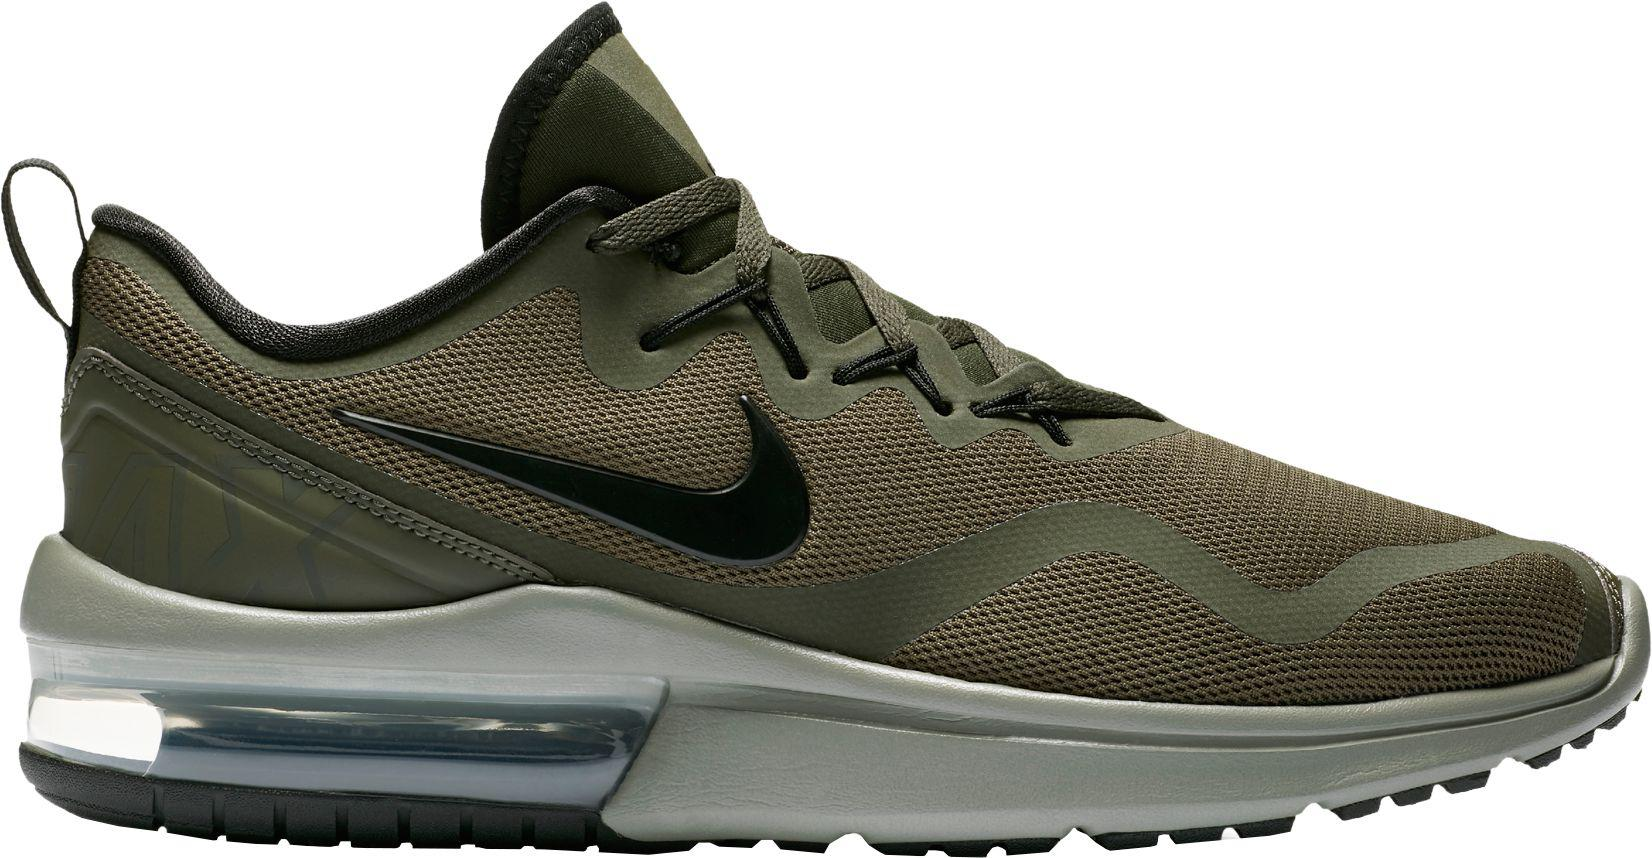 8bd9652d4a7ec7 Lyst - Nike Air Max Fury Running Shoes in Green for Men